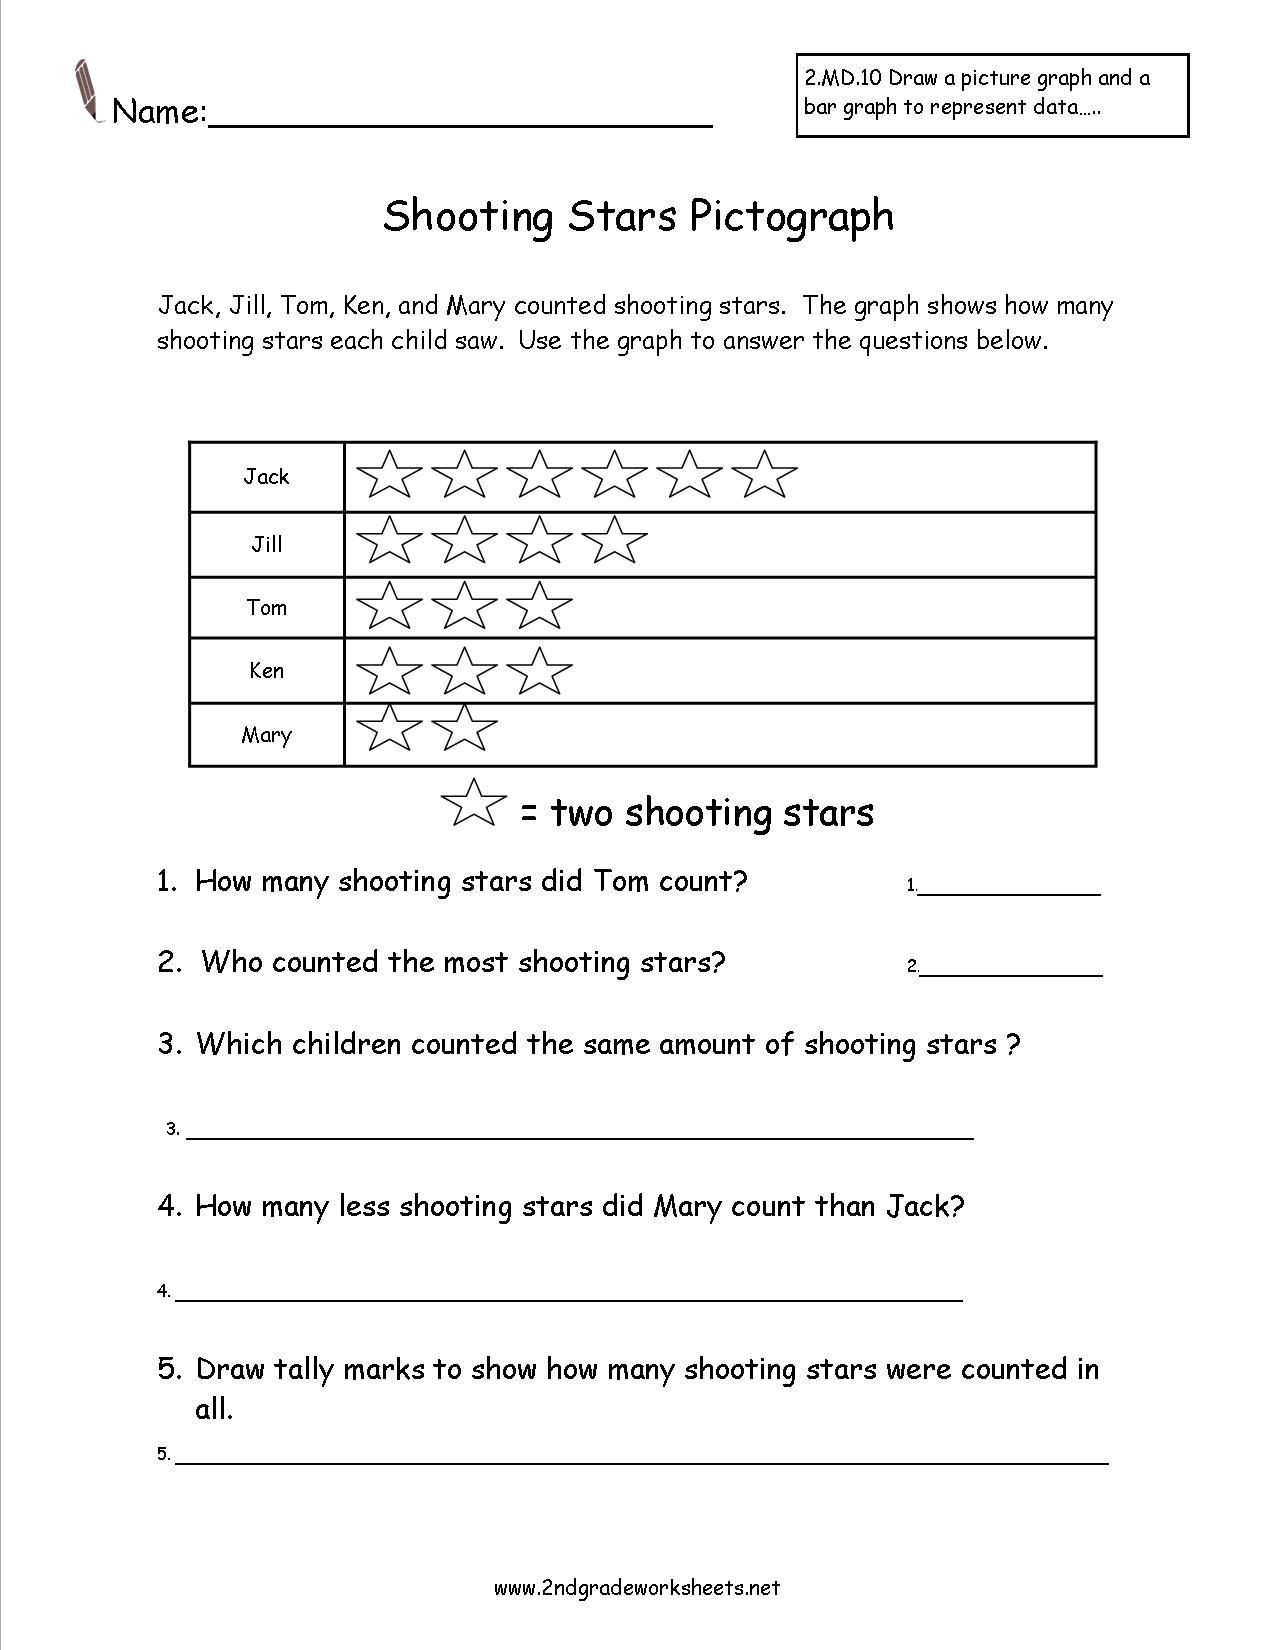 Plot Worksheets 2nd Grade Shooting Stars Pictograph Worksheet